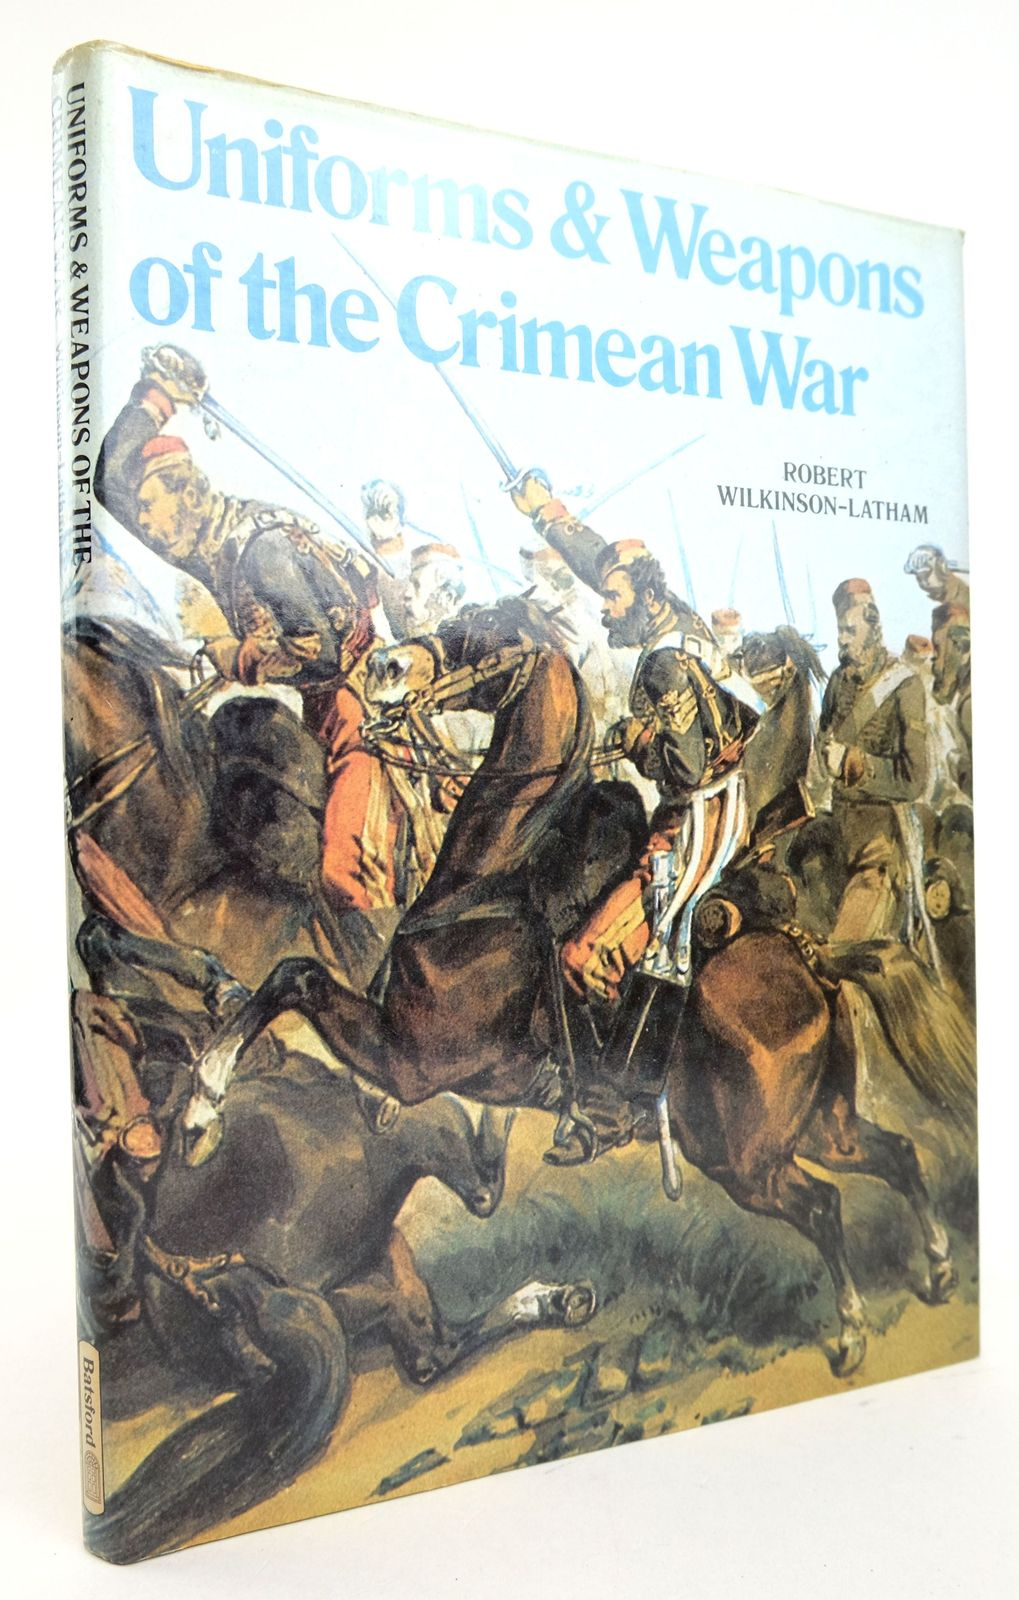 Photo of UNIFORMS & WEAPONS OF THE CRIMEAN WAR- Stock Number: 1819704